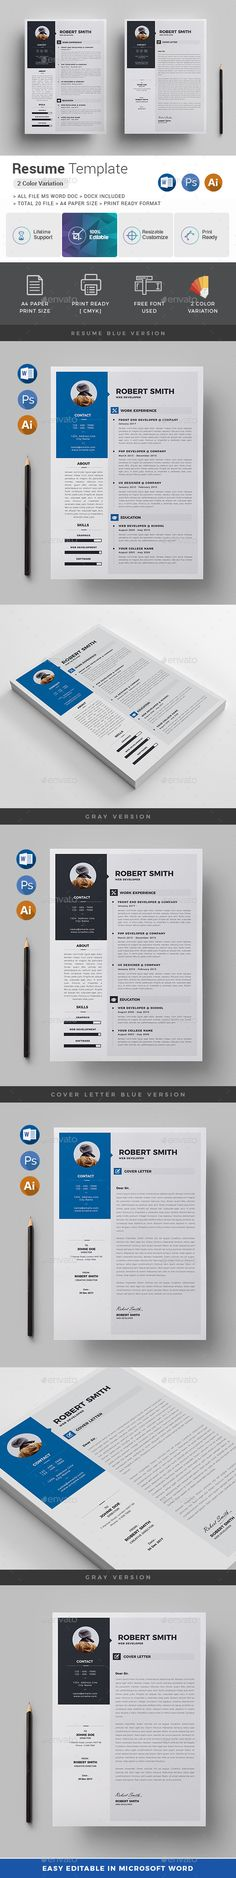 Free PSD  Creative Designer Resume Template PSD Print Ready - product design resume